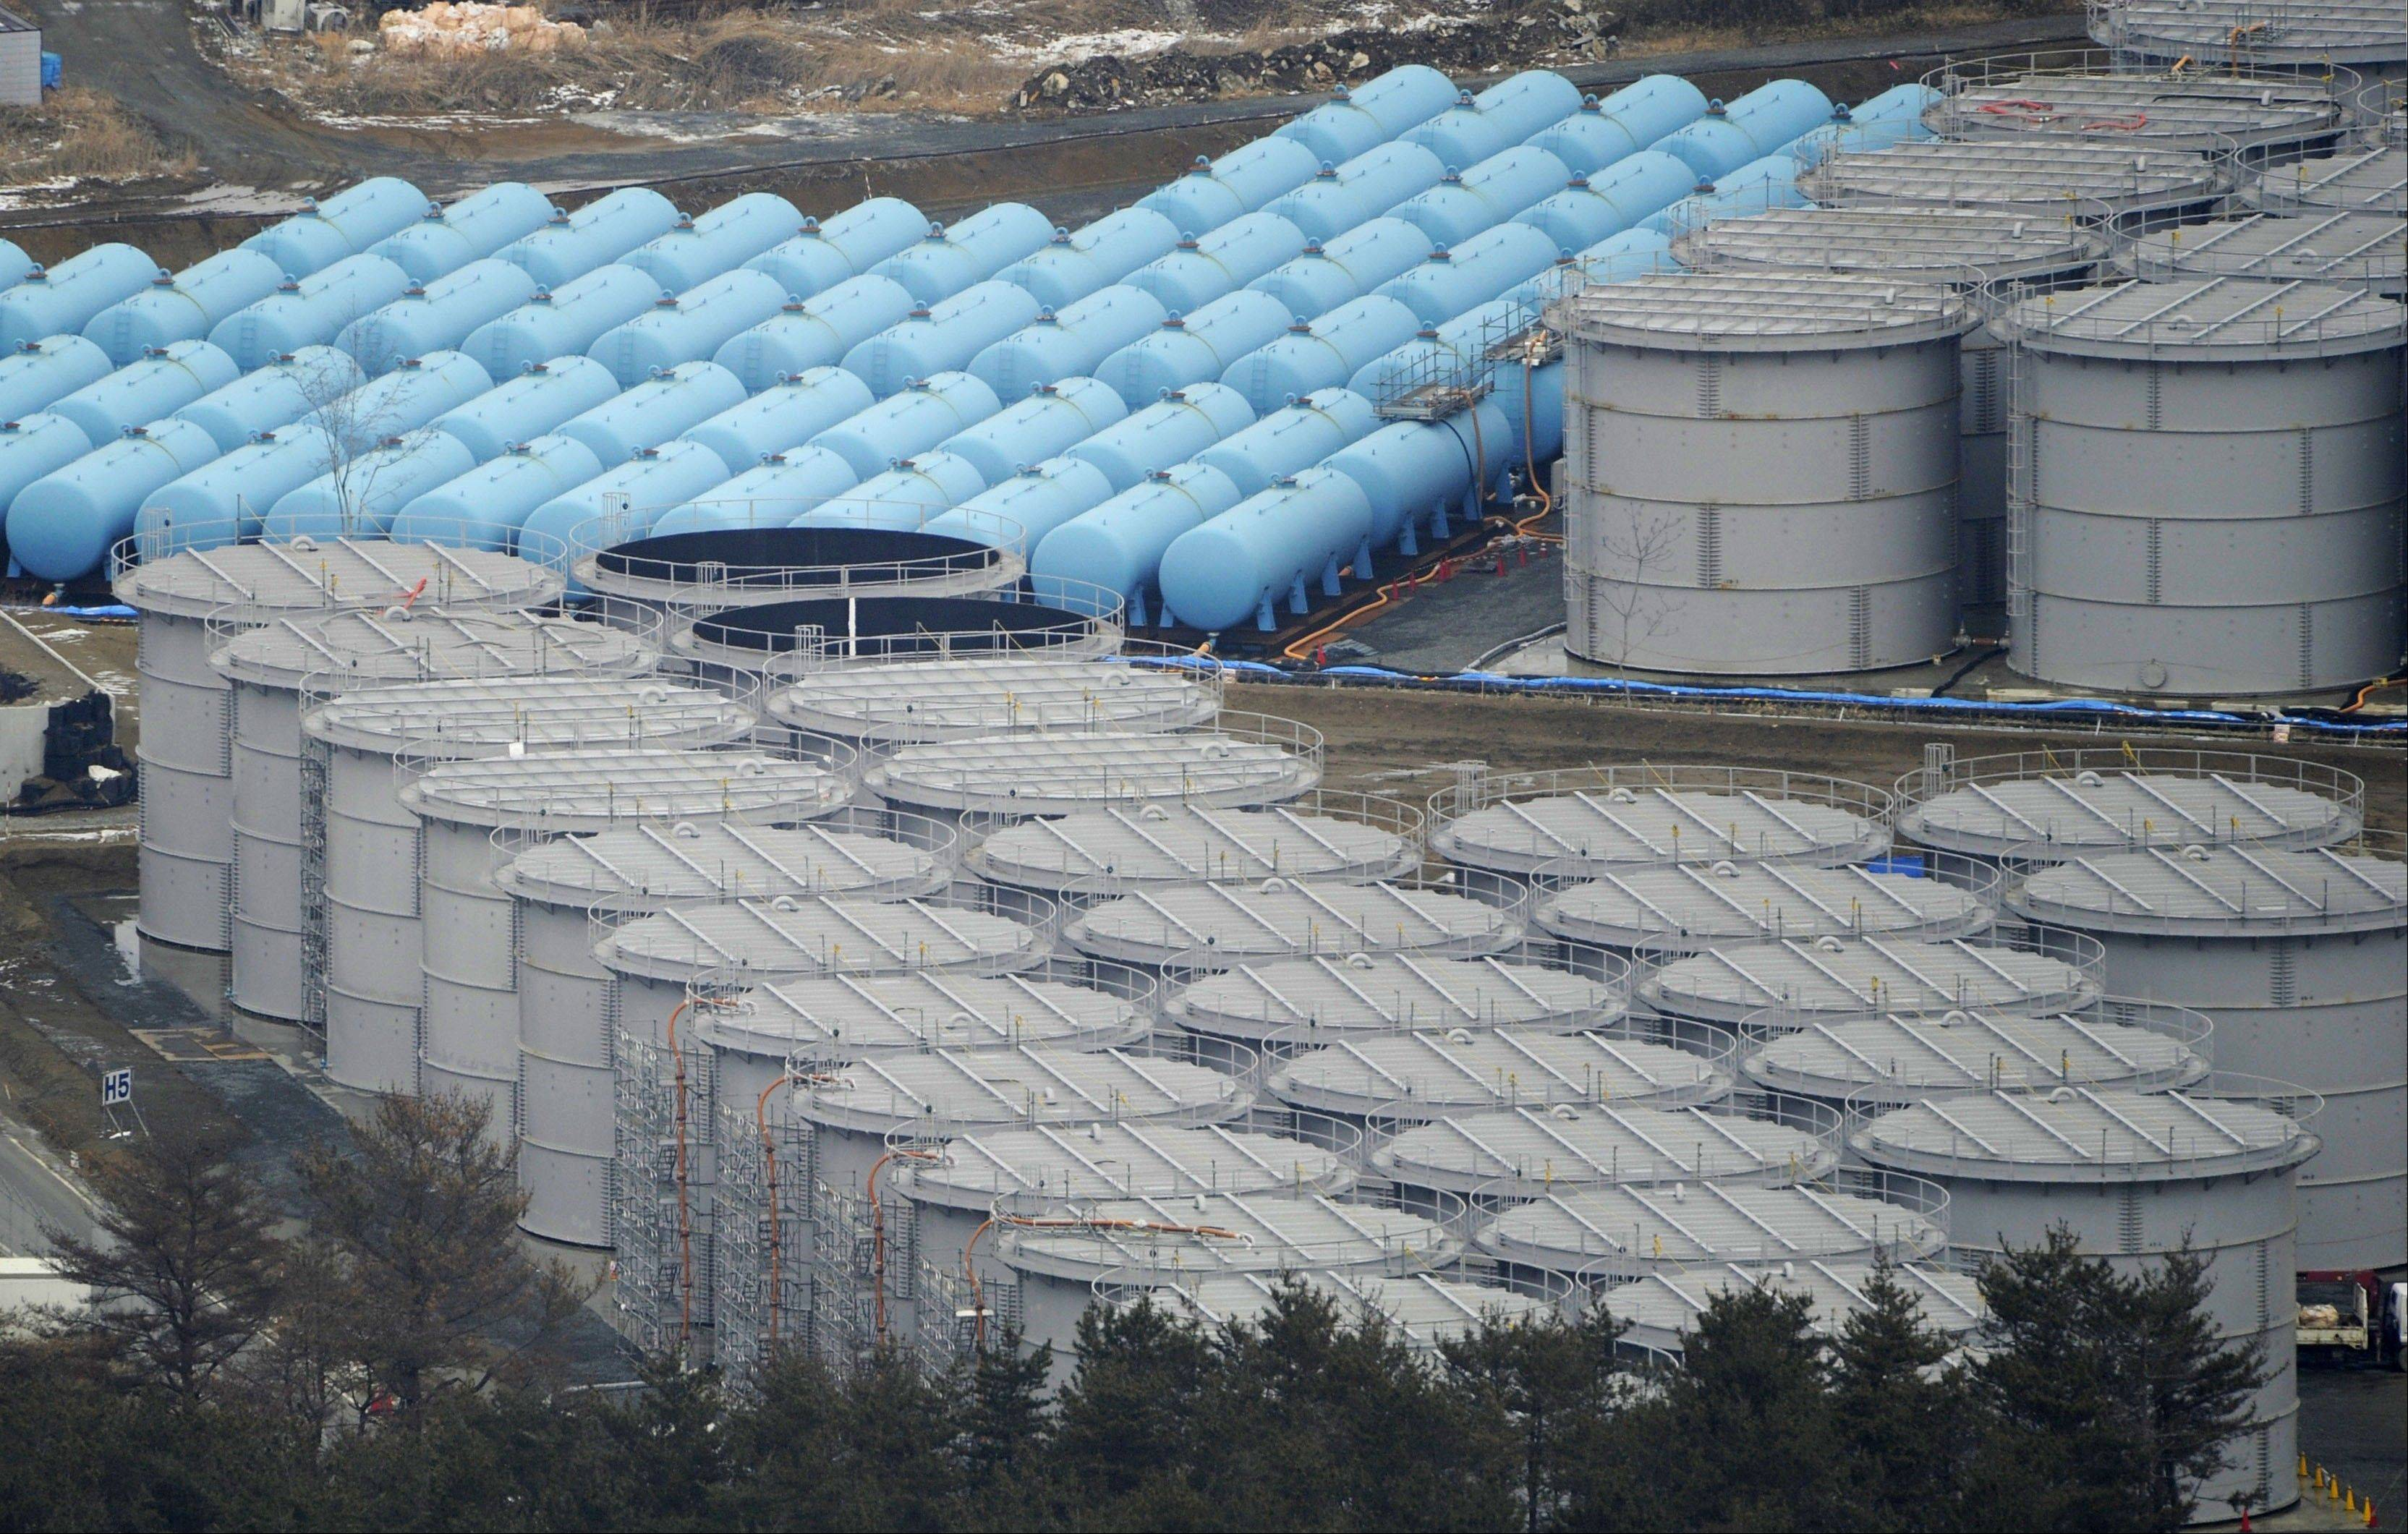 In this March 2012 file photo, storage tanks for radiation-contaminated water are seen in the compound of the tsunami-crippled Fukushima Dai-ichi nuclear power plant in northeastern Japan. Japan's crippled nuclear power plant is struggling to find space to store tens of thousands of tons of highly contaminated water used to cool the broken reactors.